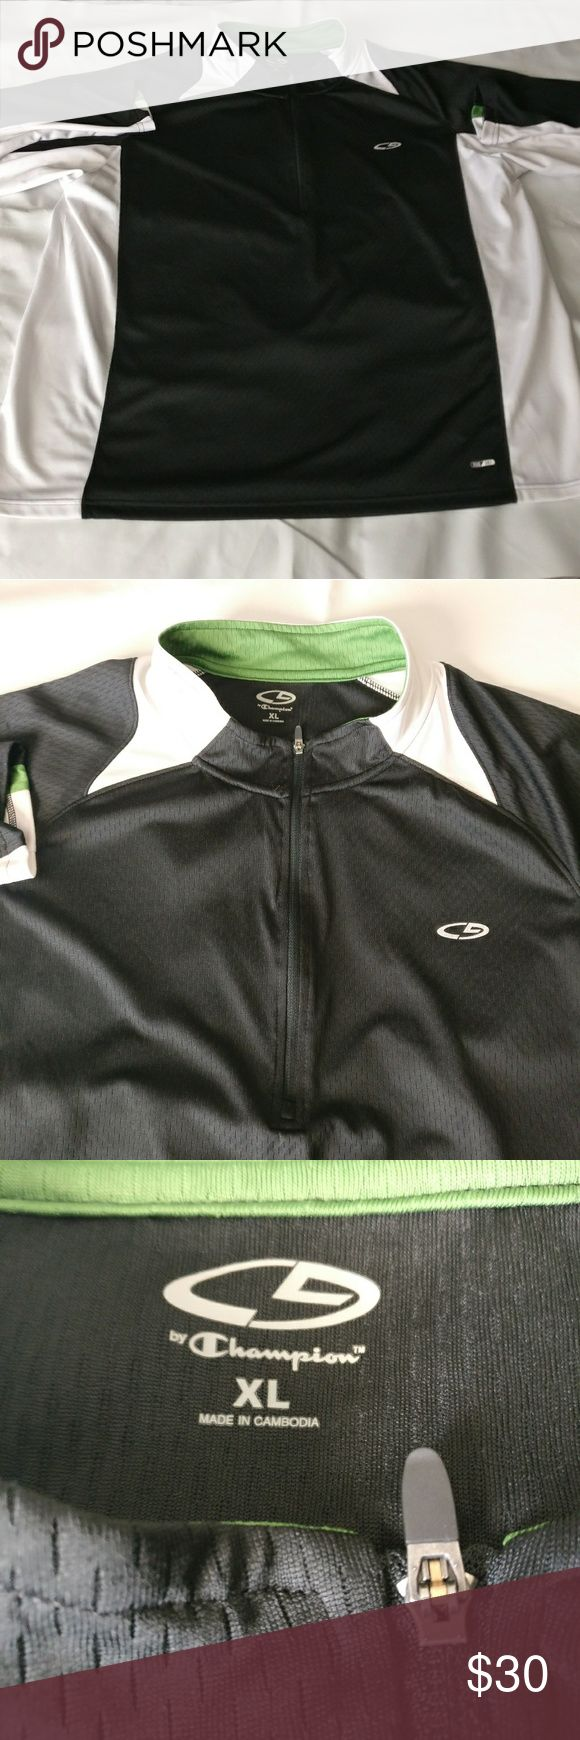 Champion 1/4 Zip Up Pullover Windbreaker Jacket Gently used before hand. No tears or holes.  TAG SIZE: XL  Length:  25 inches armpit to armpit & 29.5 inches shoulder to base  Color - Blue White Green   Fabric - 100% Polyester Champion Sweaters Zip Up